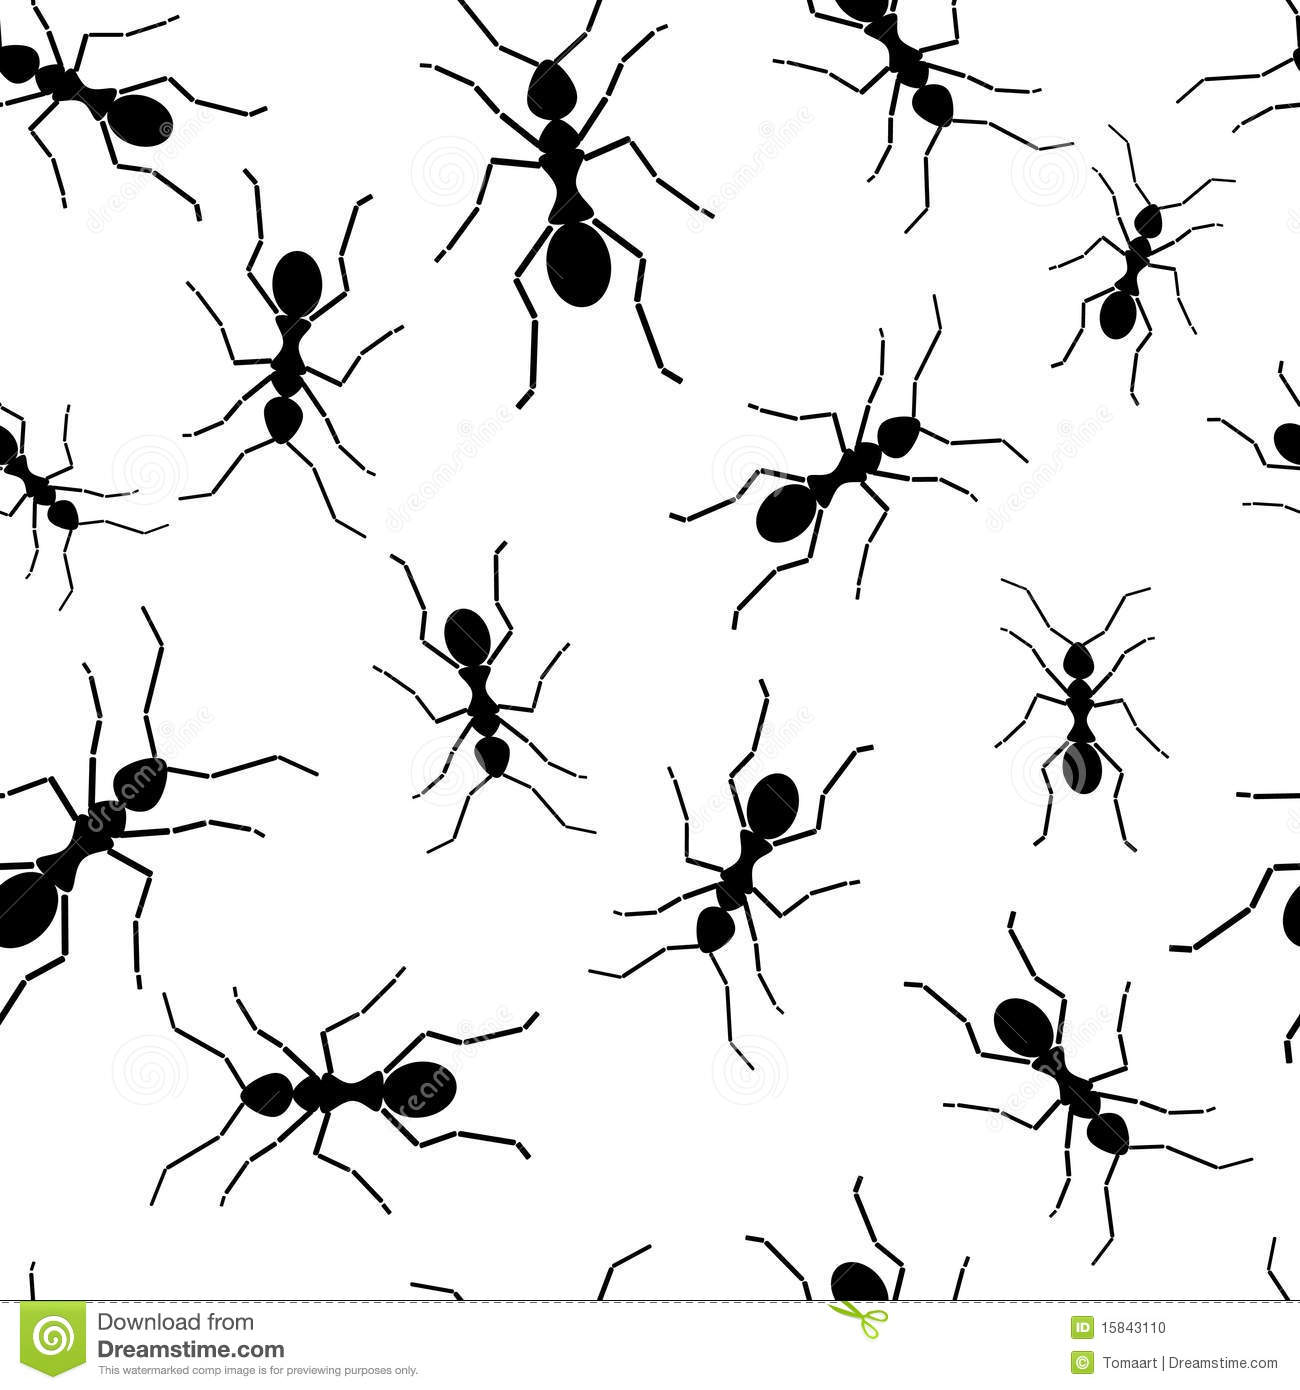 Charles Holbert furthermore Stock Photo Ant Repetitions Image15843110 likewise Animals Ant moreover  on ant mimic spider